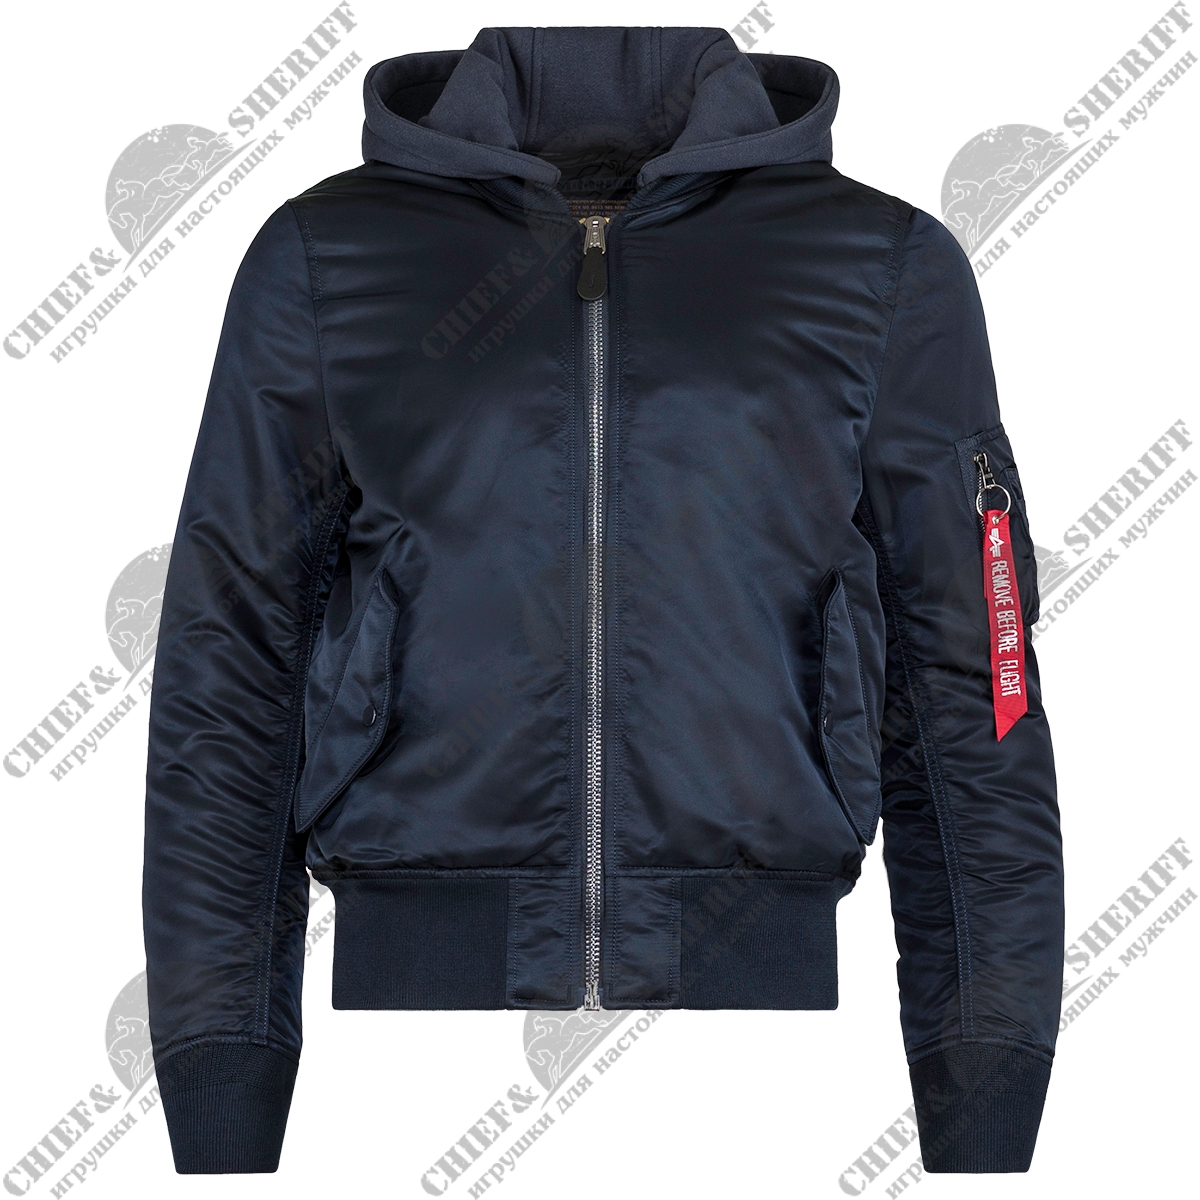 Куртка бомбер Alpha Industries MA-1 Natus Flight Jacket, replica blue/bLue, MJM47506RB/BL